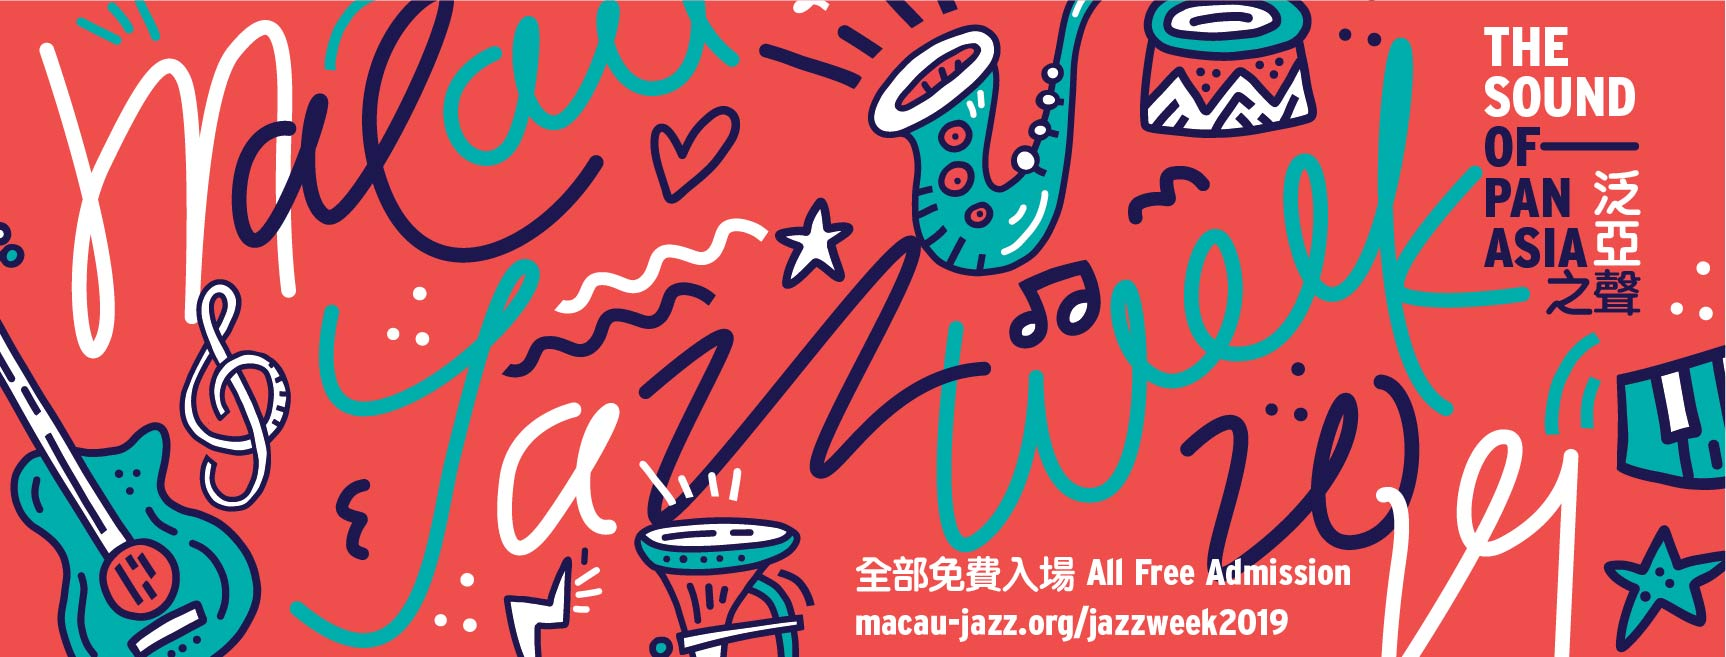 macau jazz week banner 2019